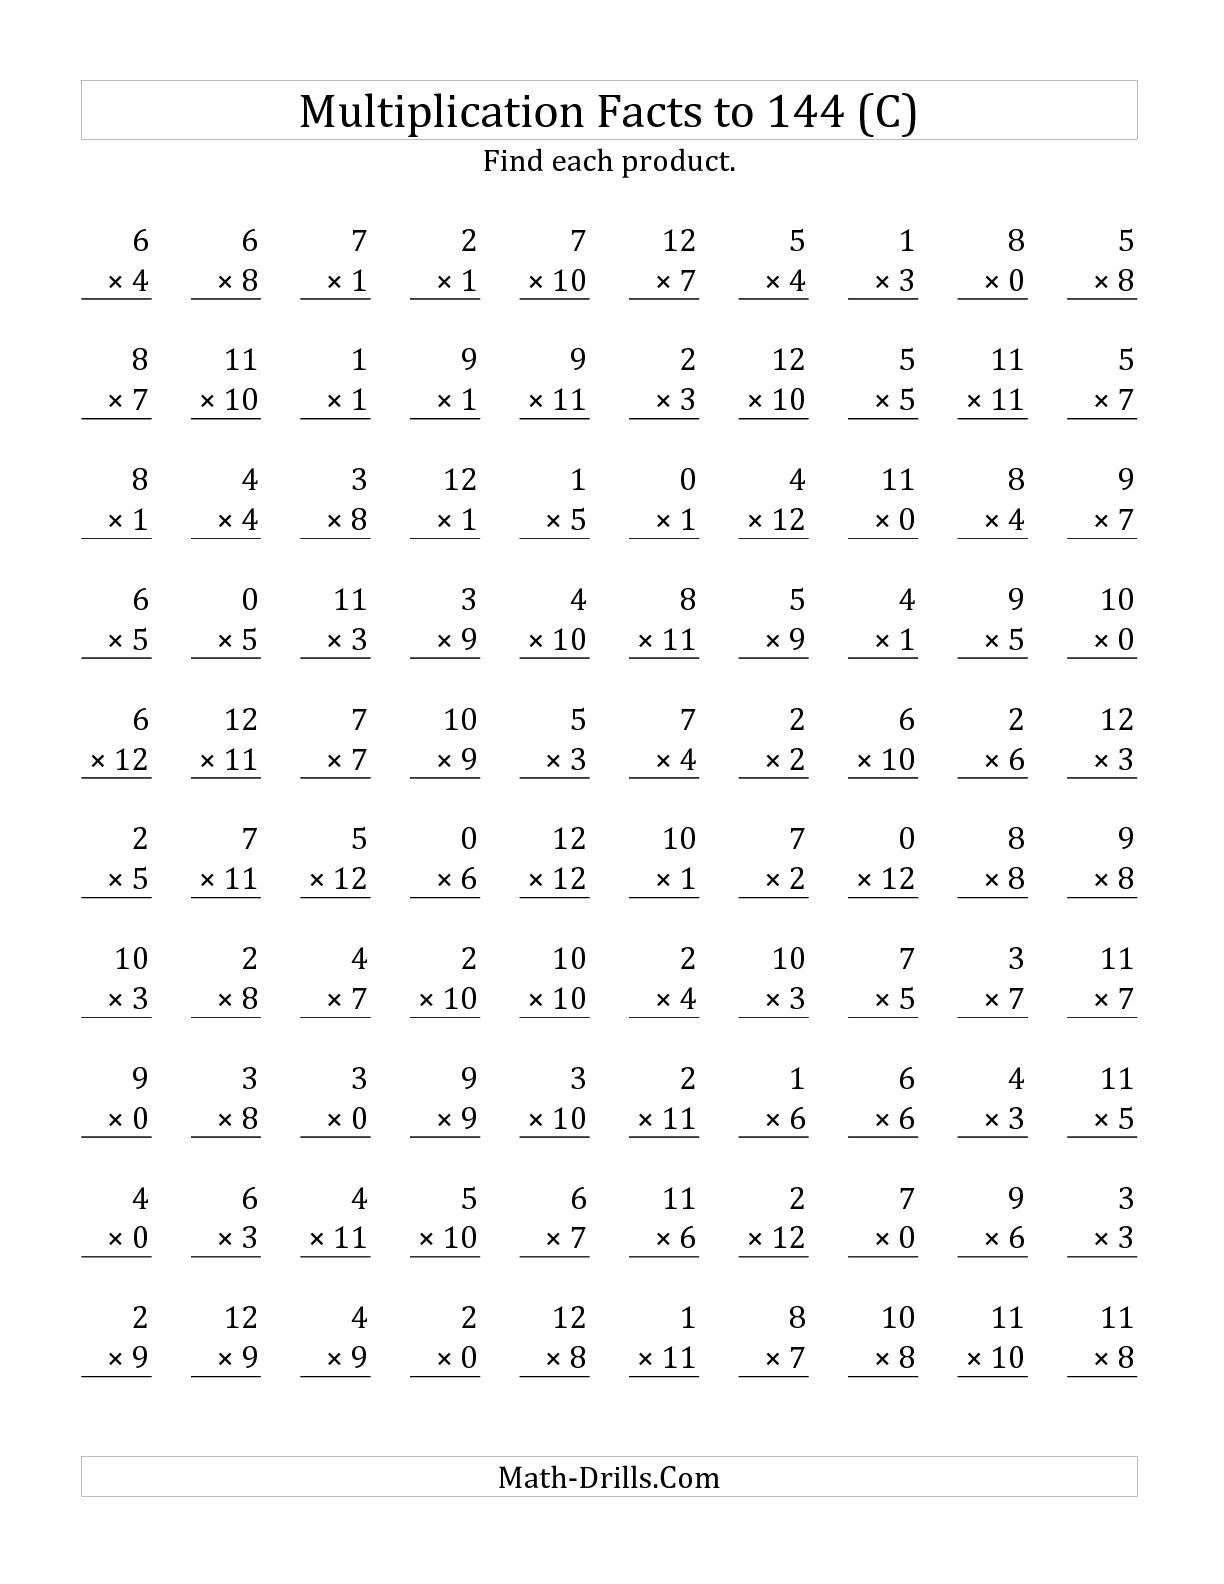 The Multiplication Facts To 144 Including Zeros C Math